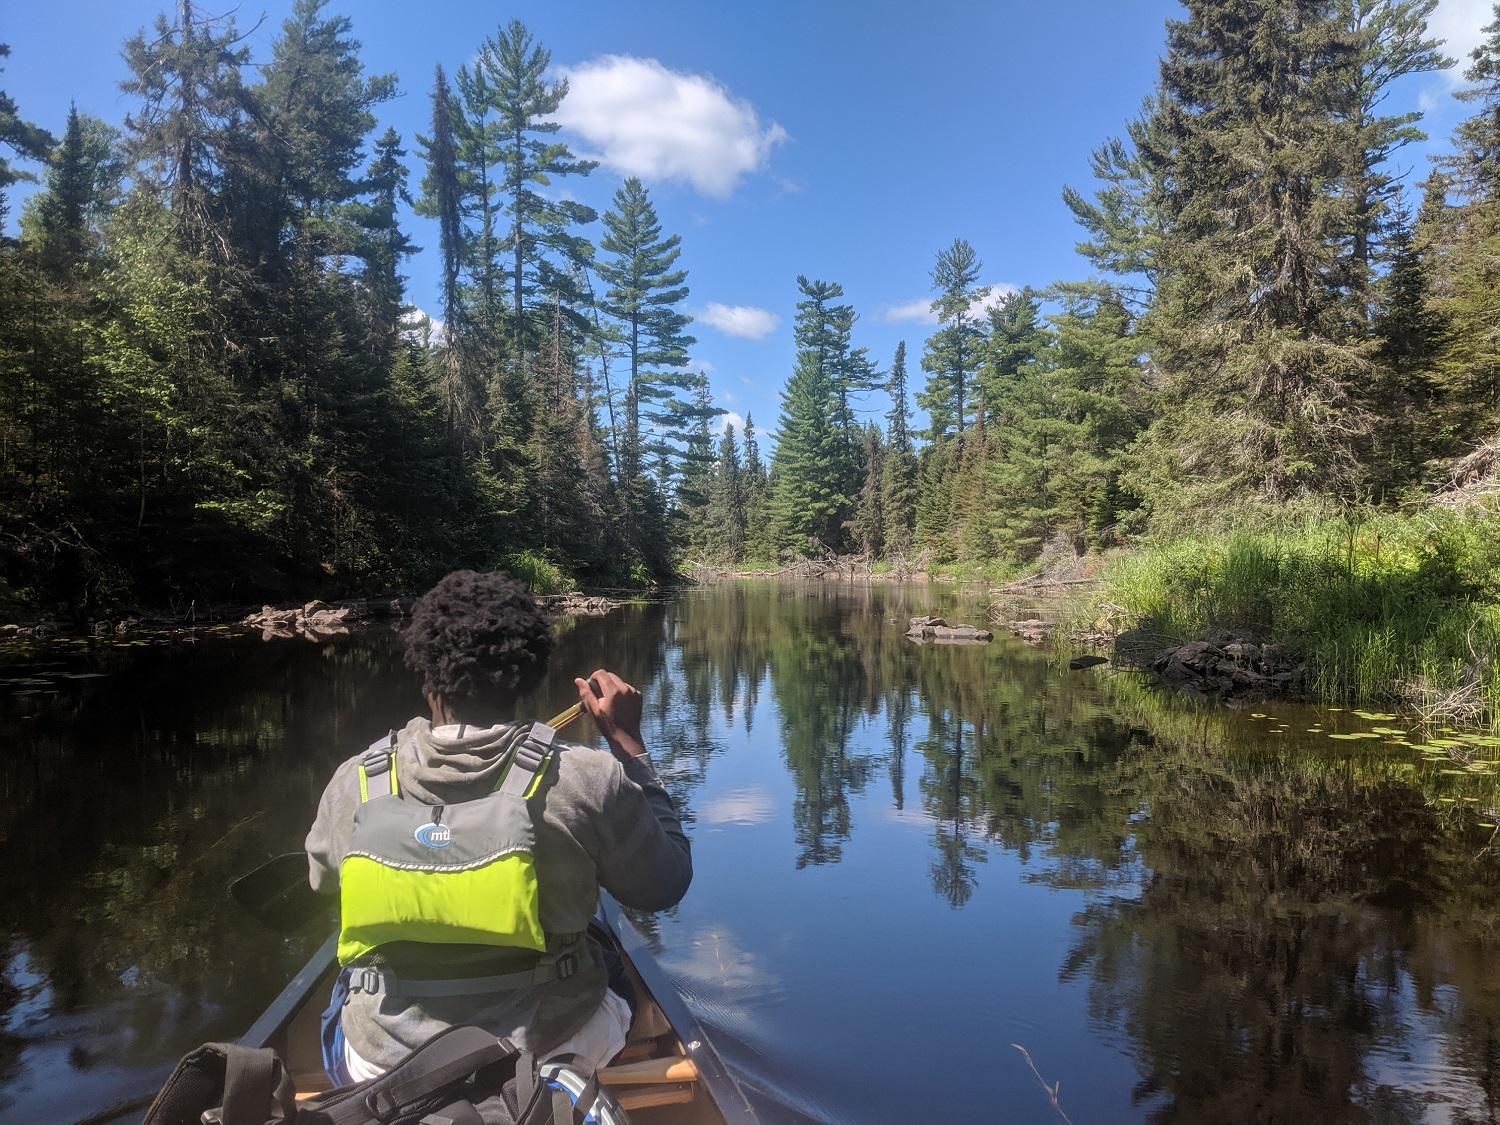 Support the Boundary Waters